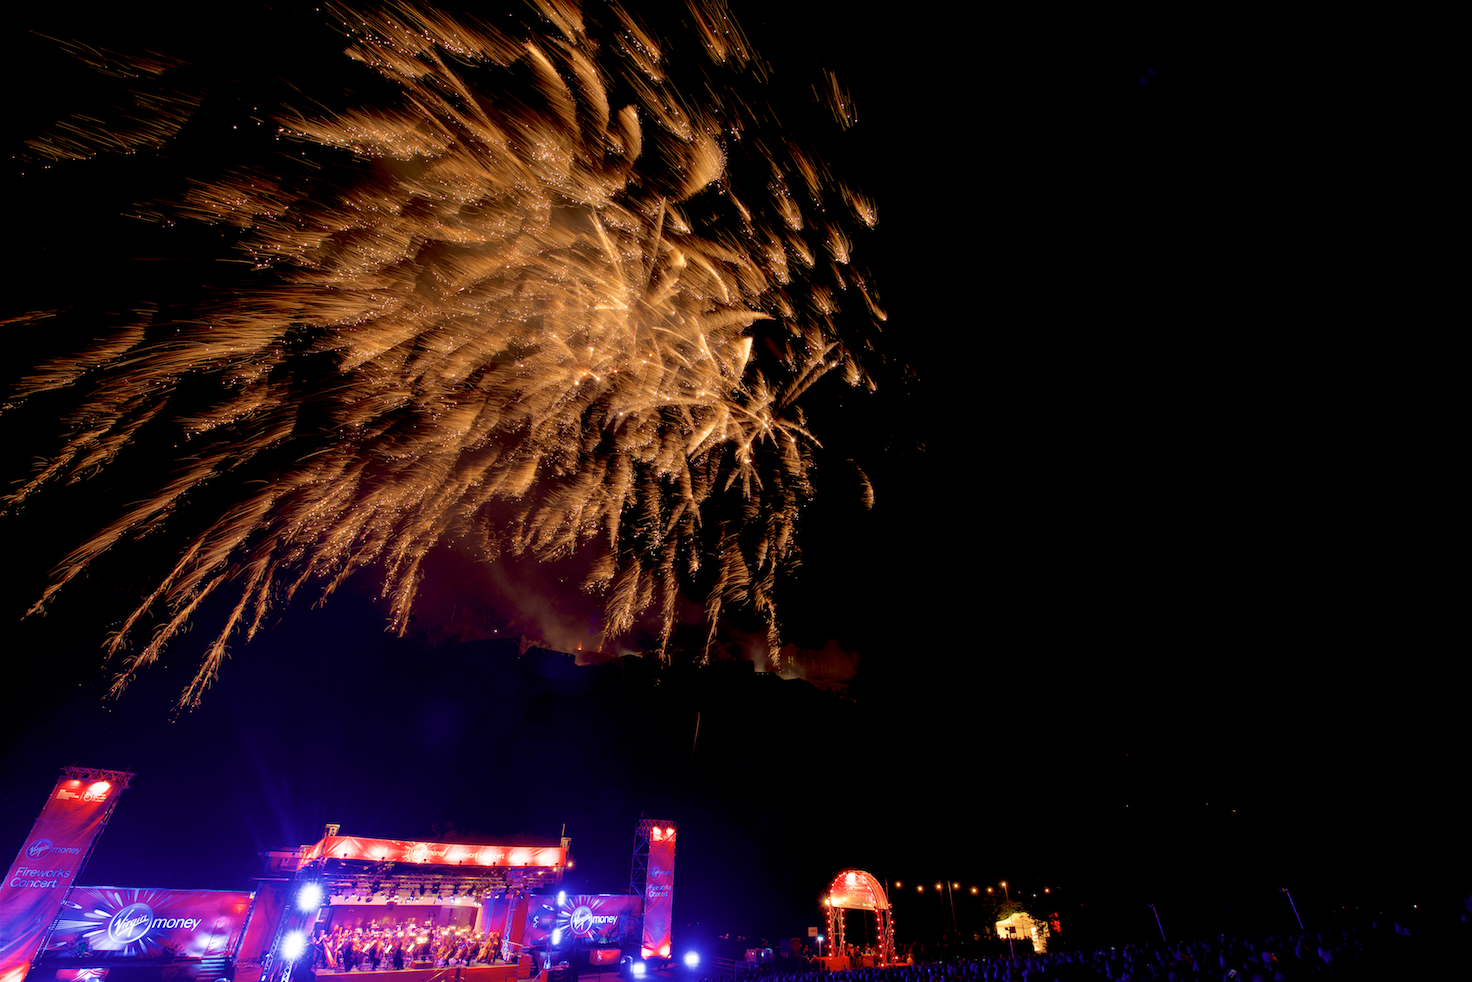 virgin-money-fireworks-concert-edinburgh-castleedinburgh-international-festival-edinburgh-castle-29th-august-2016-6